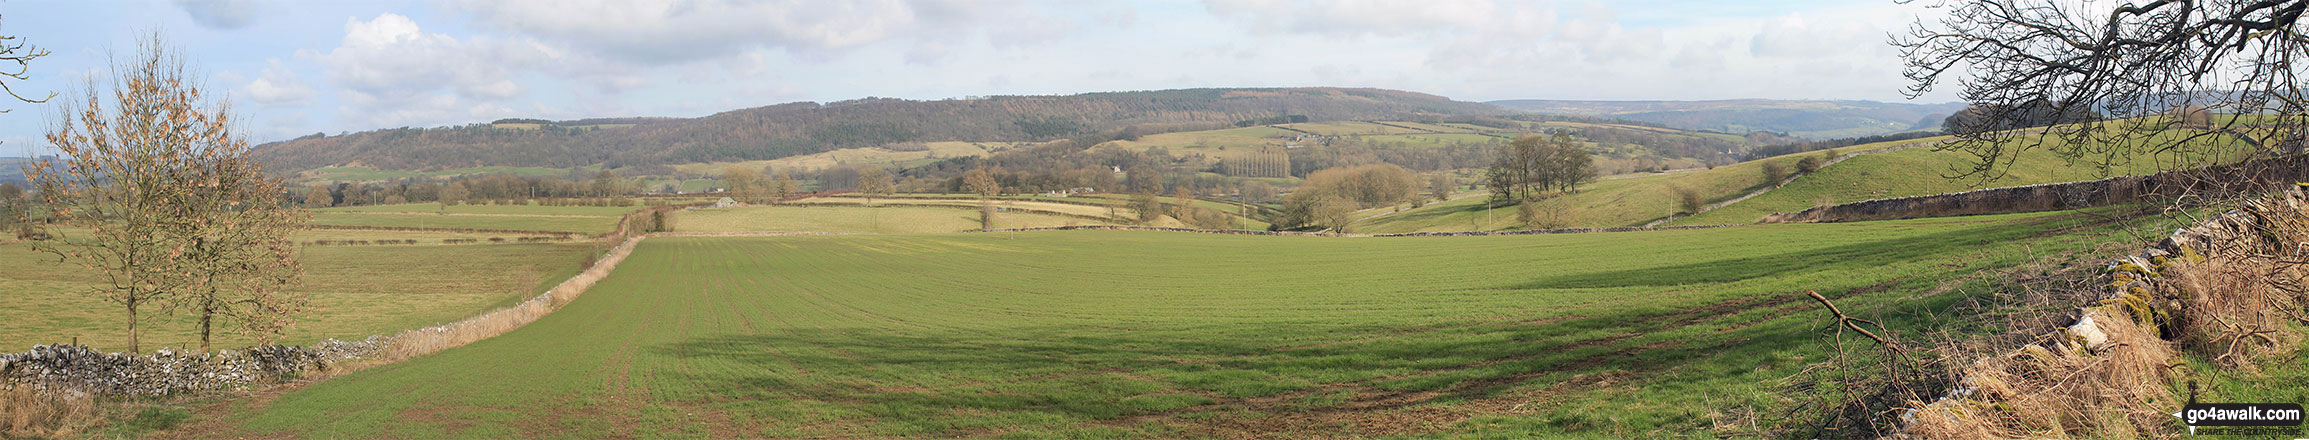 The view from the trig point on Noton Barn